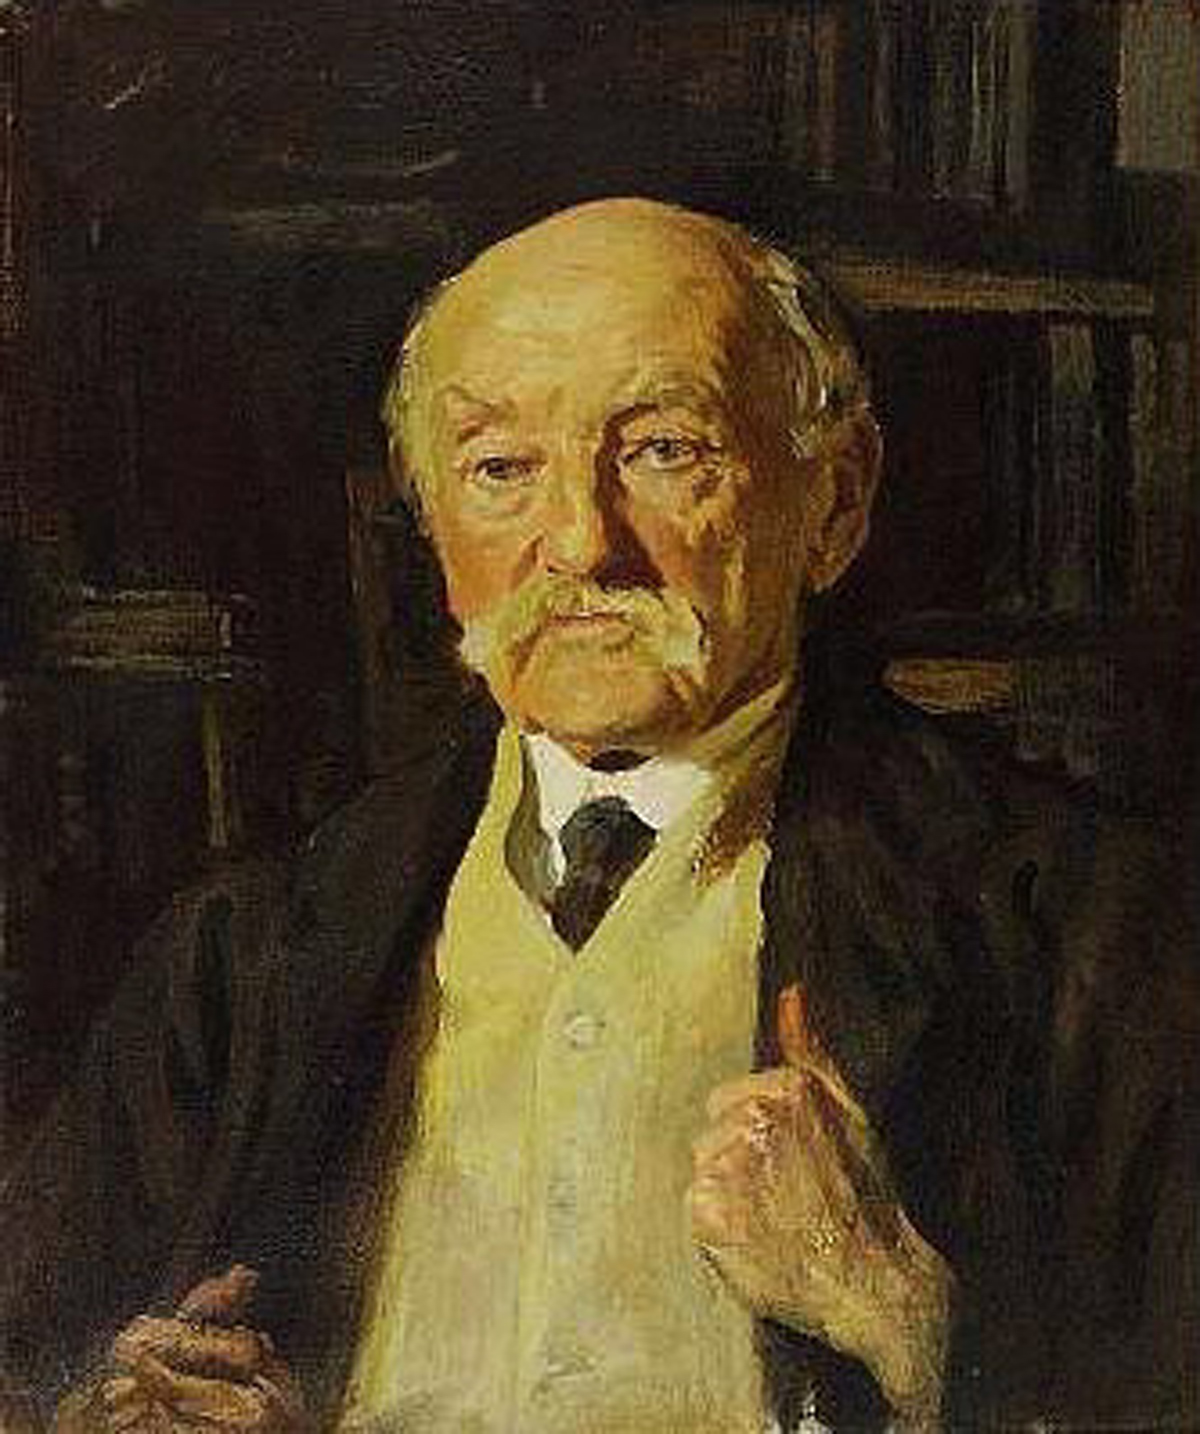 FOR LITERARY LOVERS: Thomas Hardy in old age